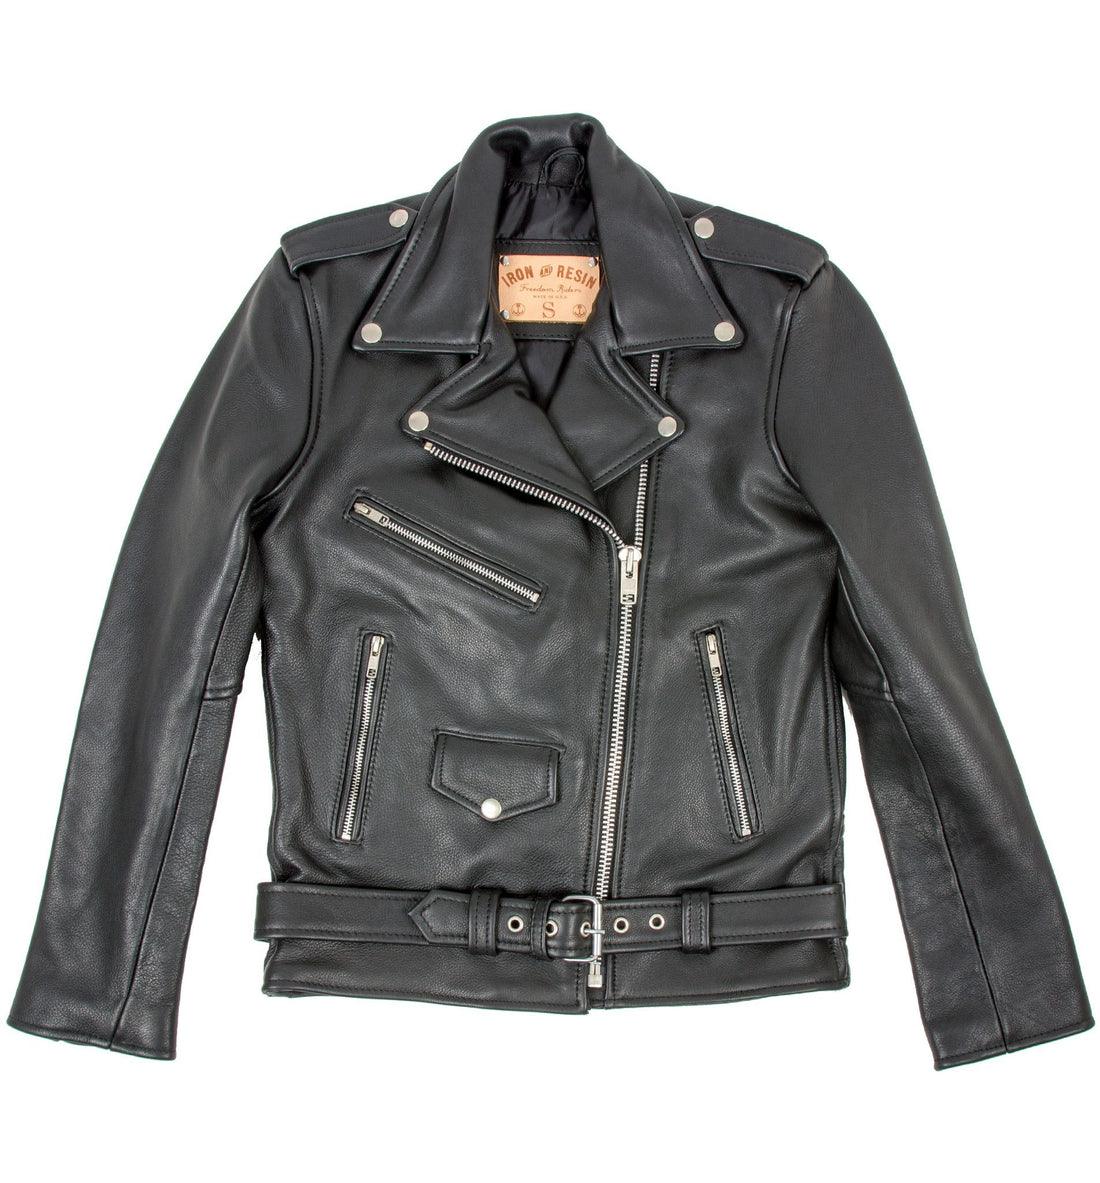 INR x Understated Leather Easy Rider Jacket - Apparel: Women's: Outerwear - Iron and Resin